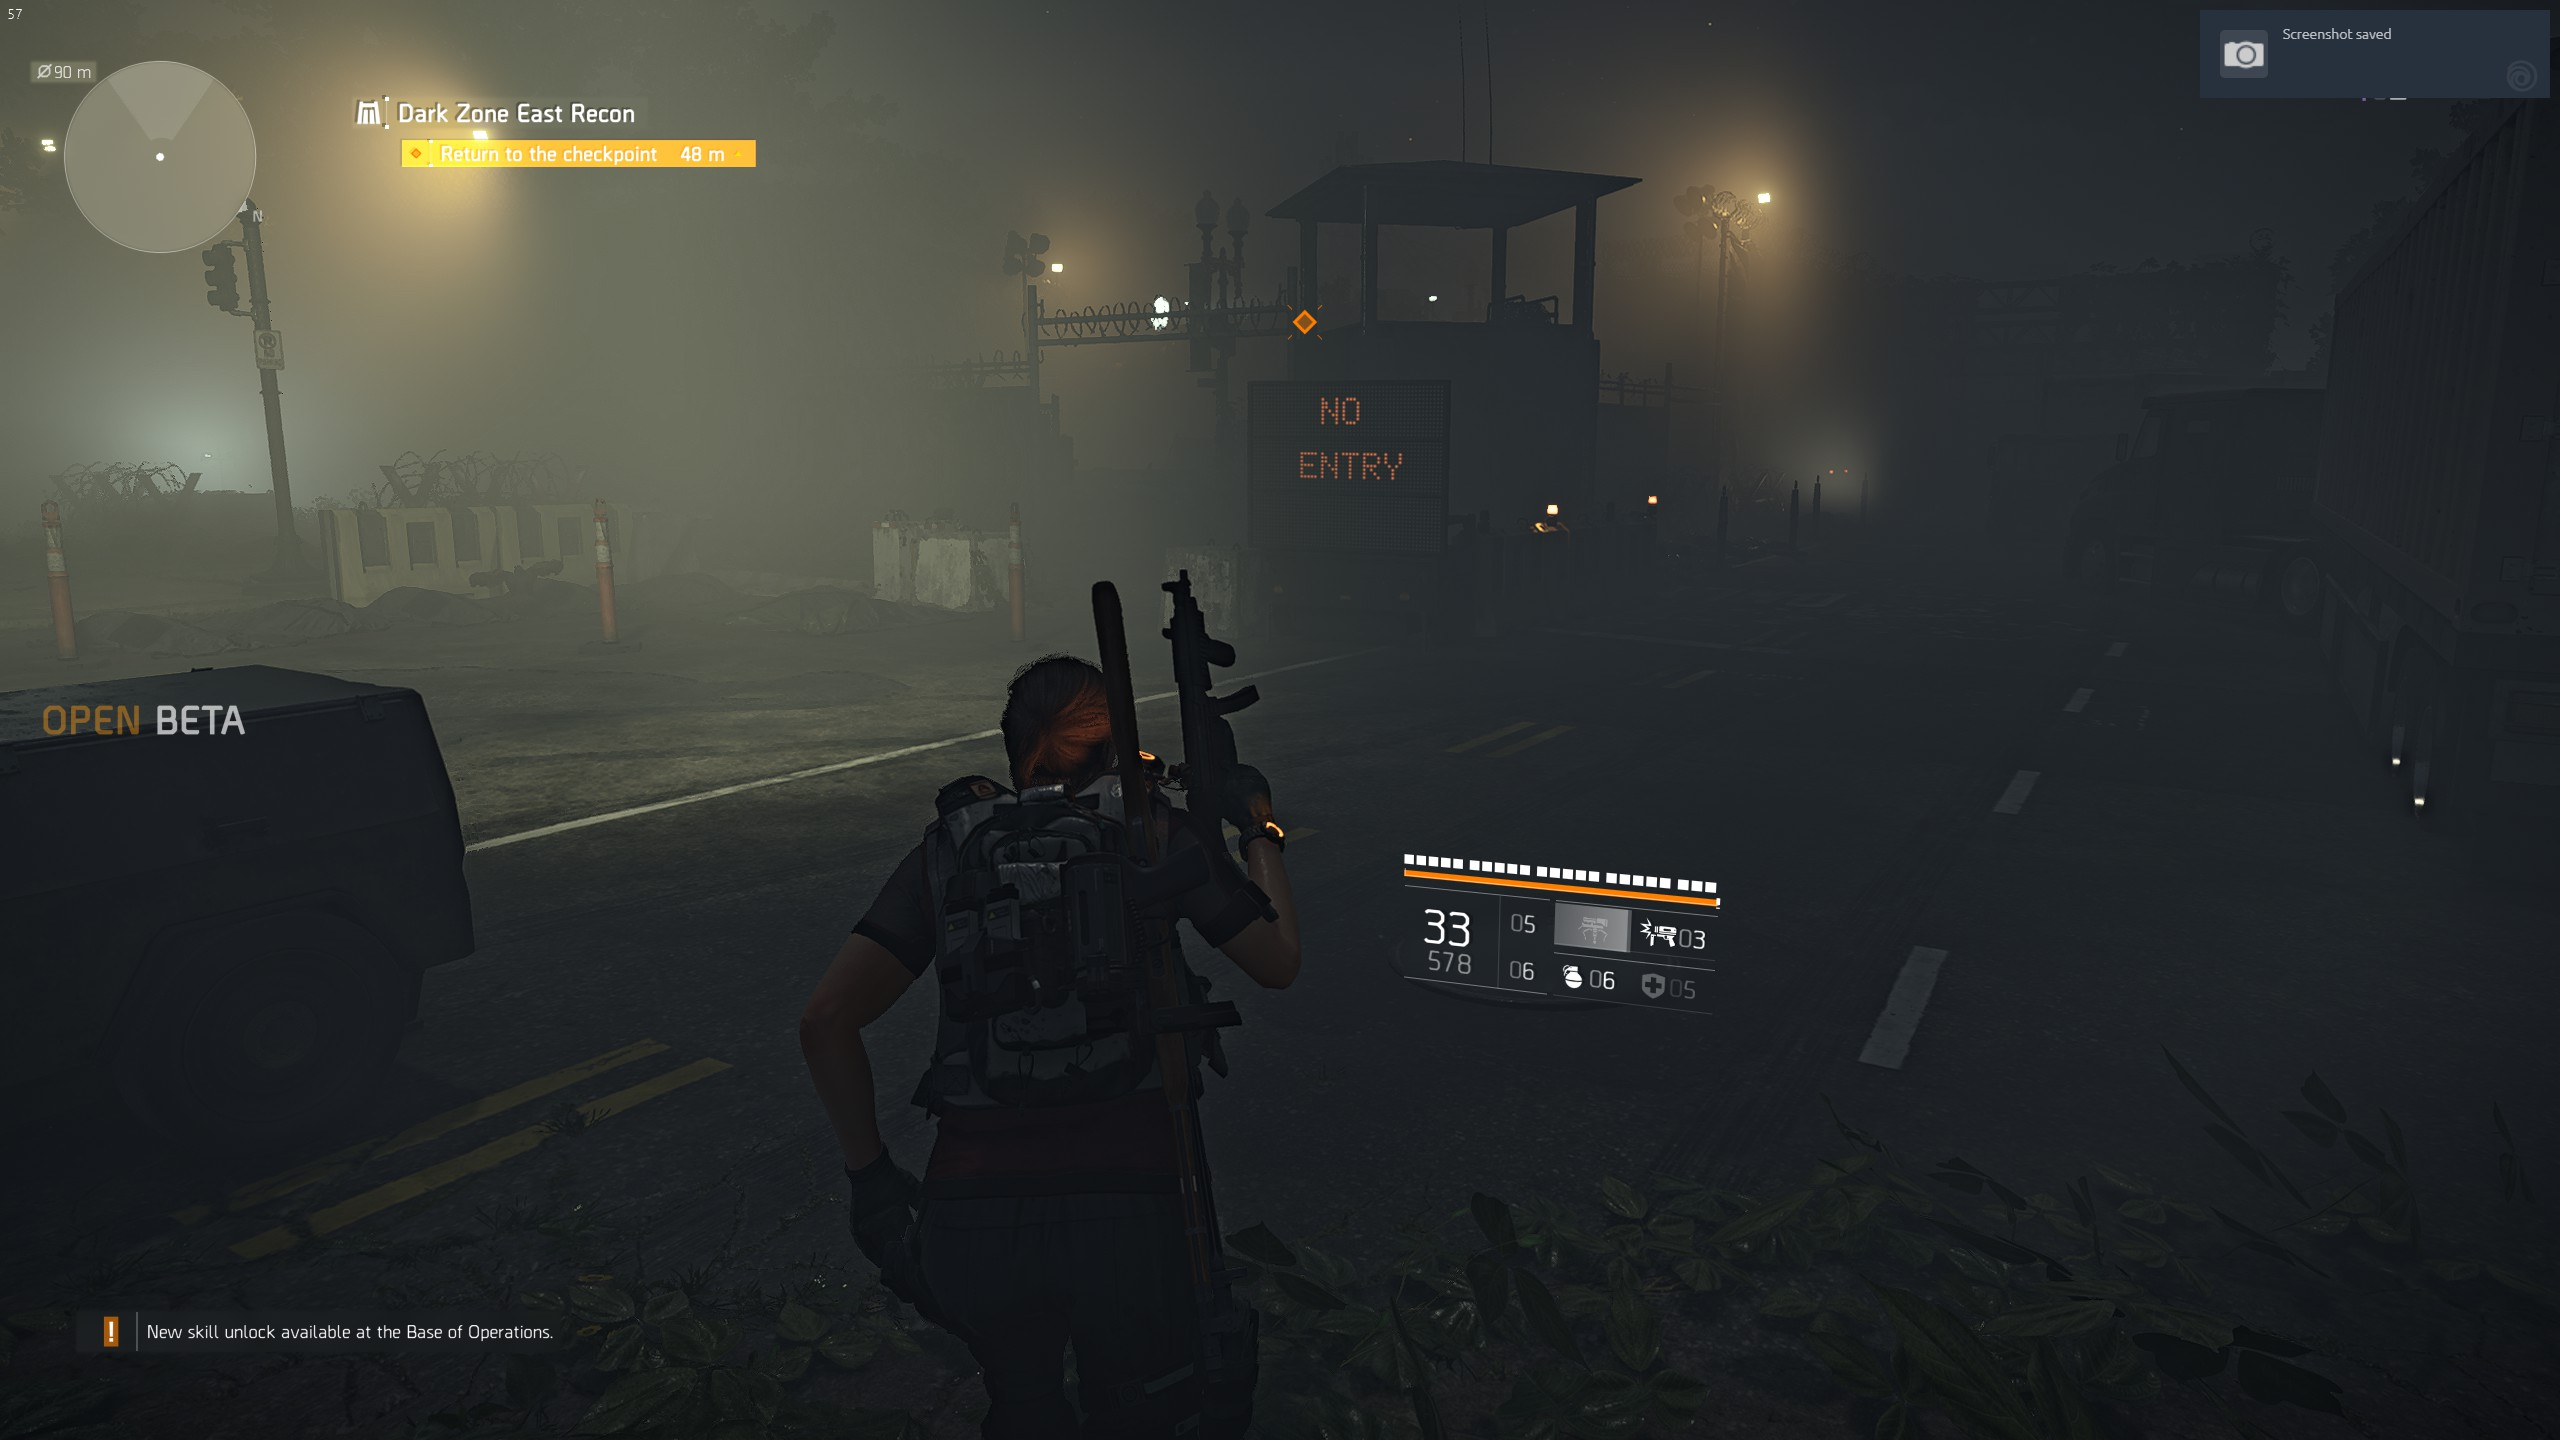 Tom Clancy's The Division 2 - Open Beta2019-3-2-14-16-29.jpg